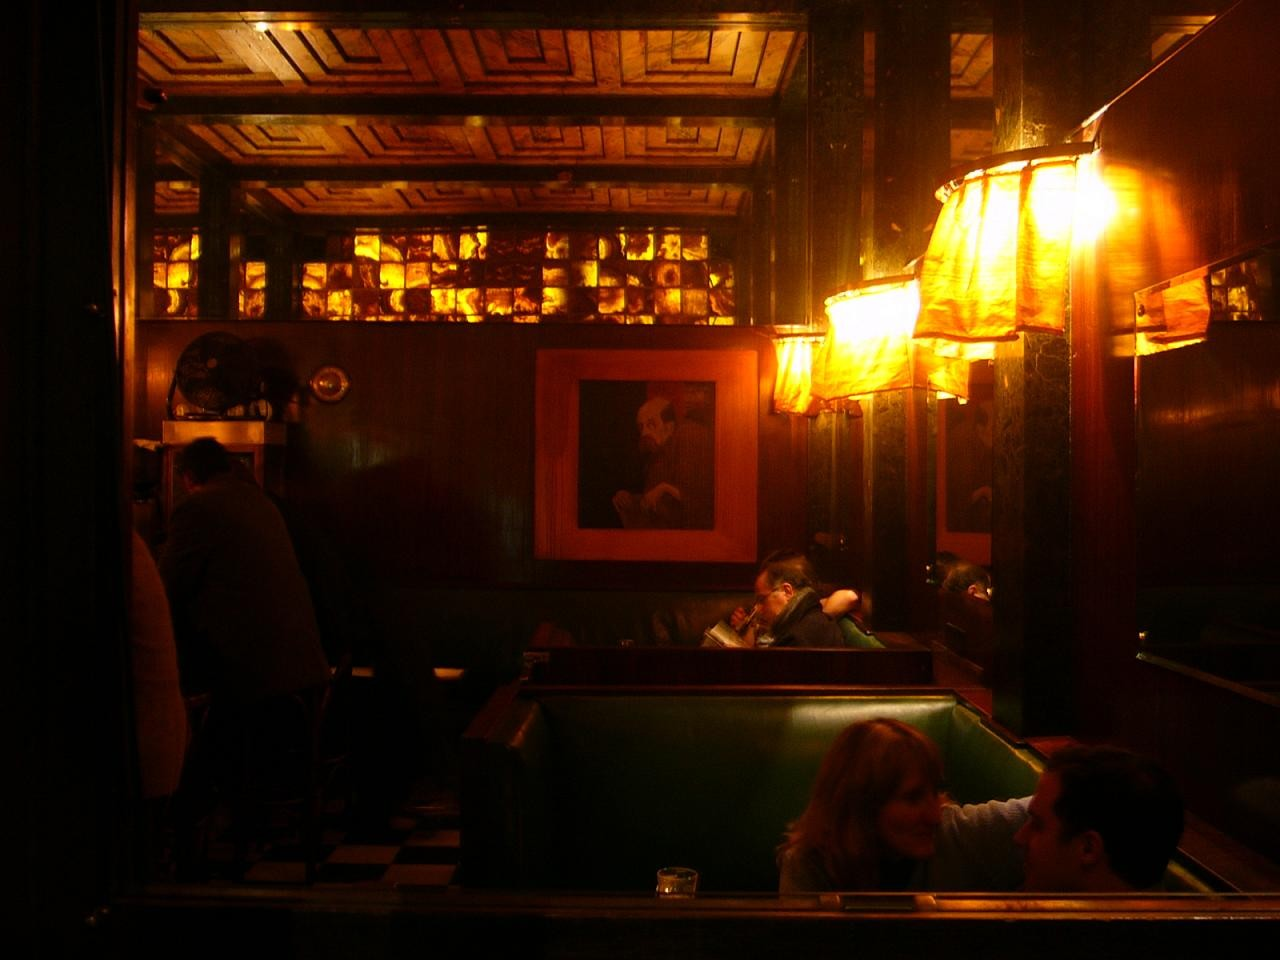 El interior del Bar American en Viena. Image © Flickr CC user Rory Hyde